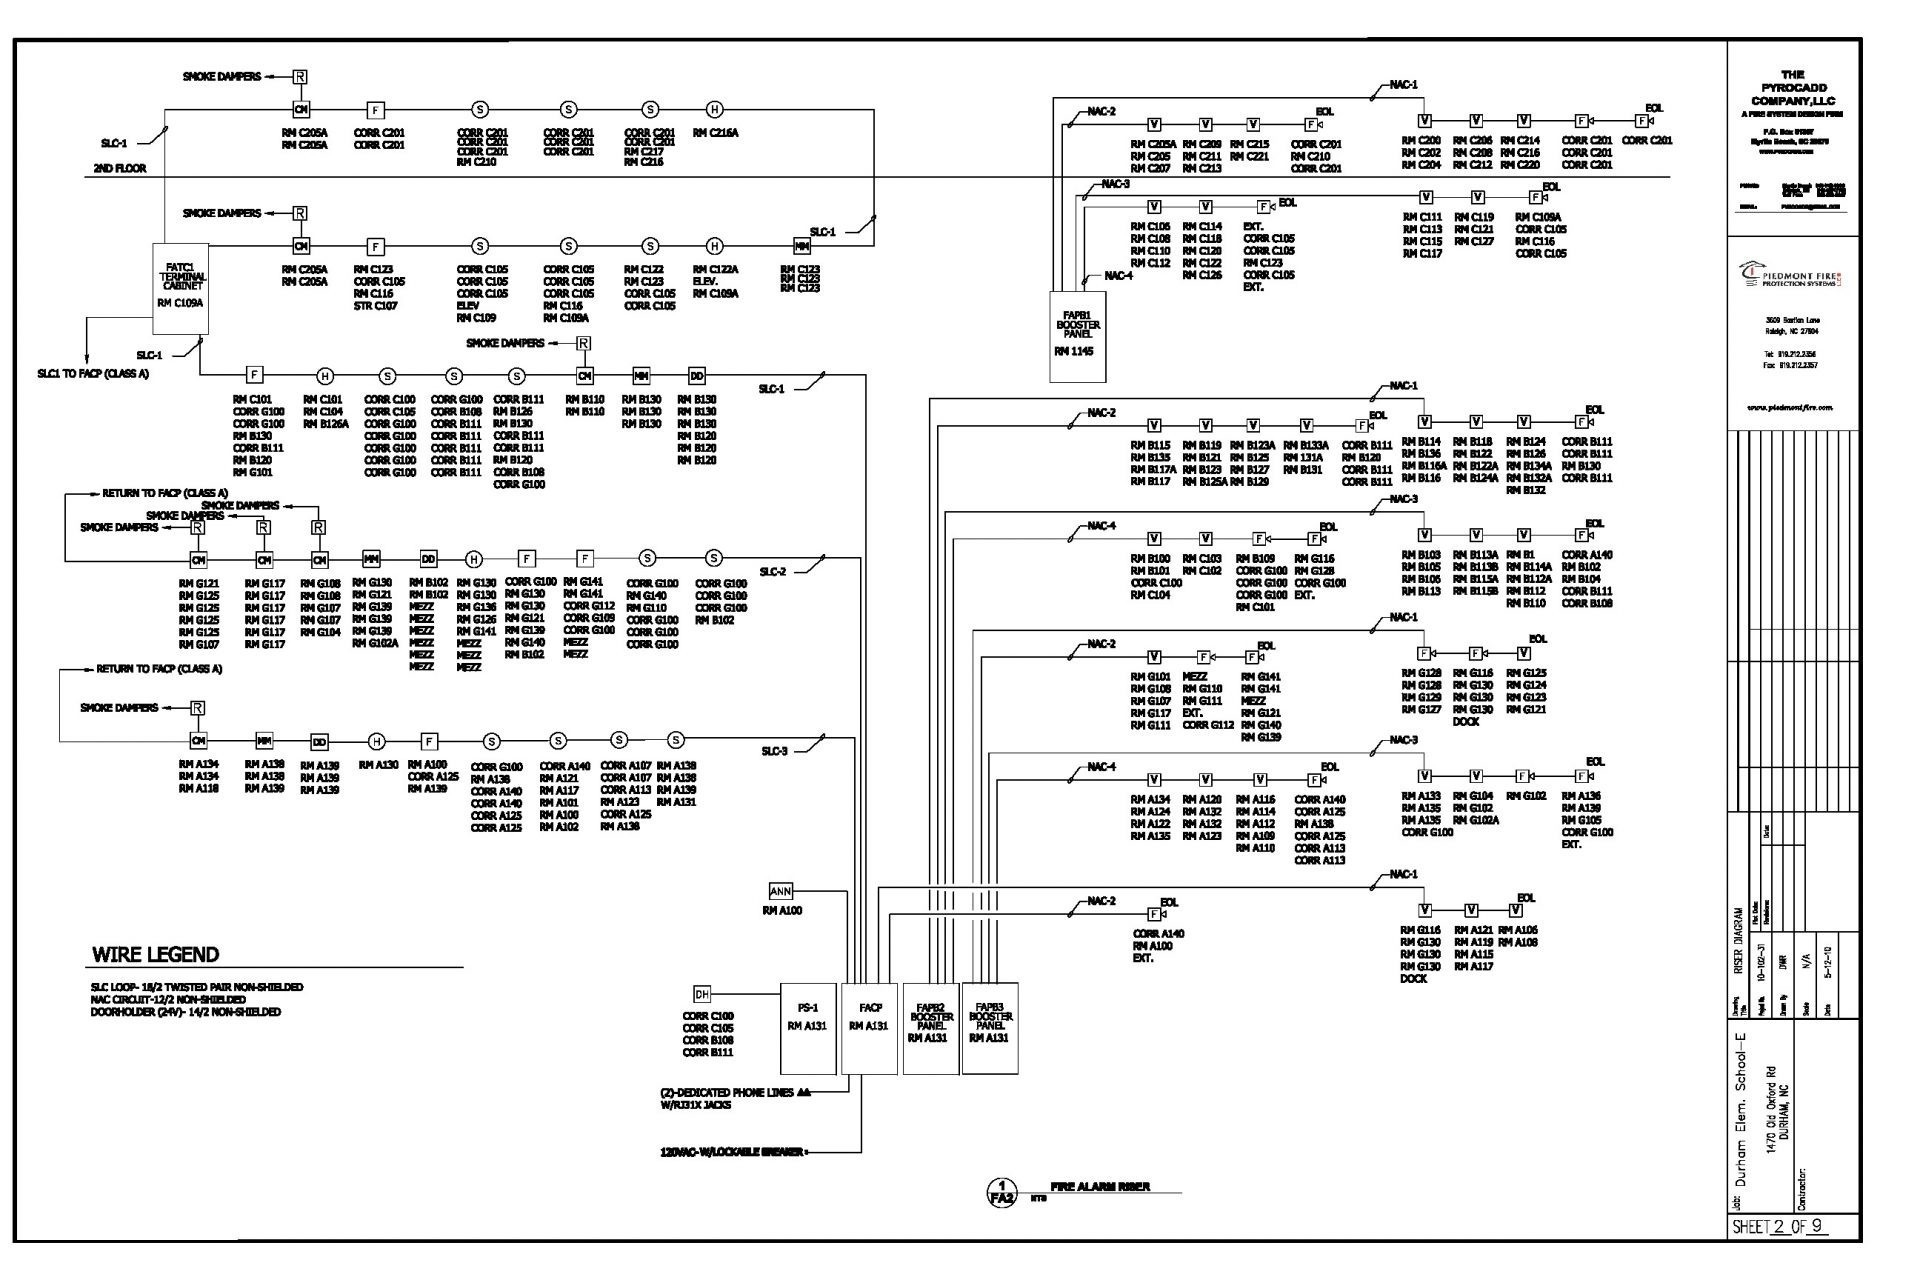 gas fireplace wiring diagram Collection-Wiring Diagram for Gas Fireplace Best Wiring Diagram Addressable Fire Alarm Refrence Smoke Detector Wiring 2-e